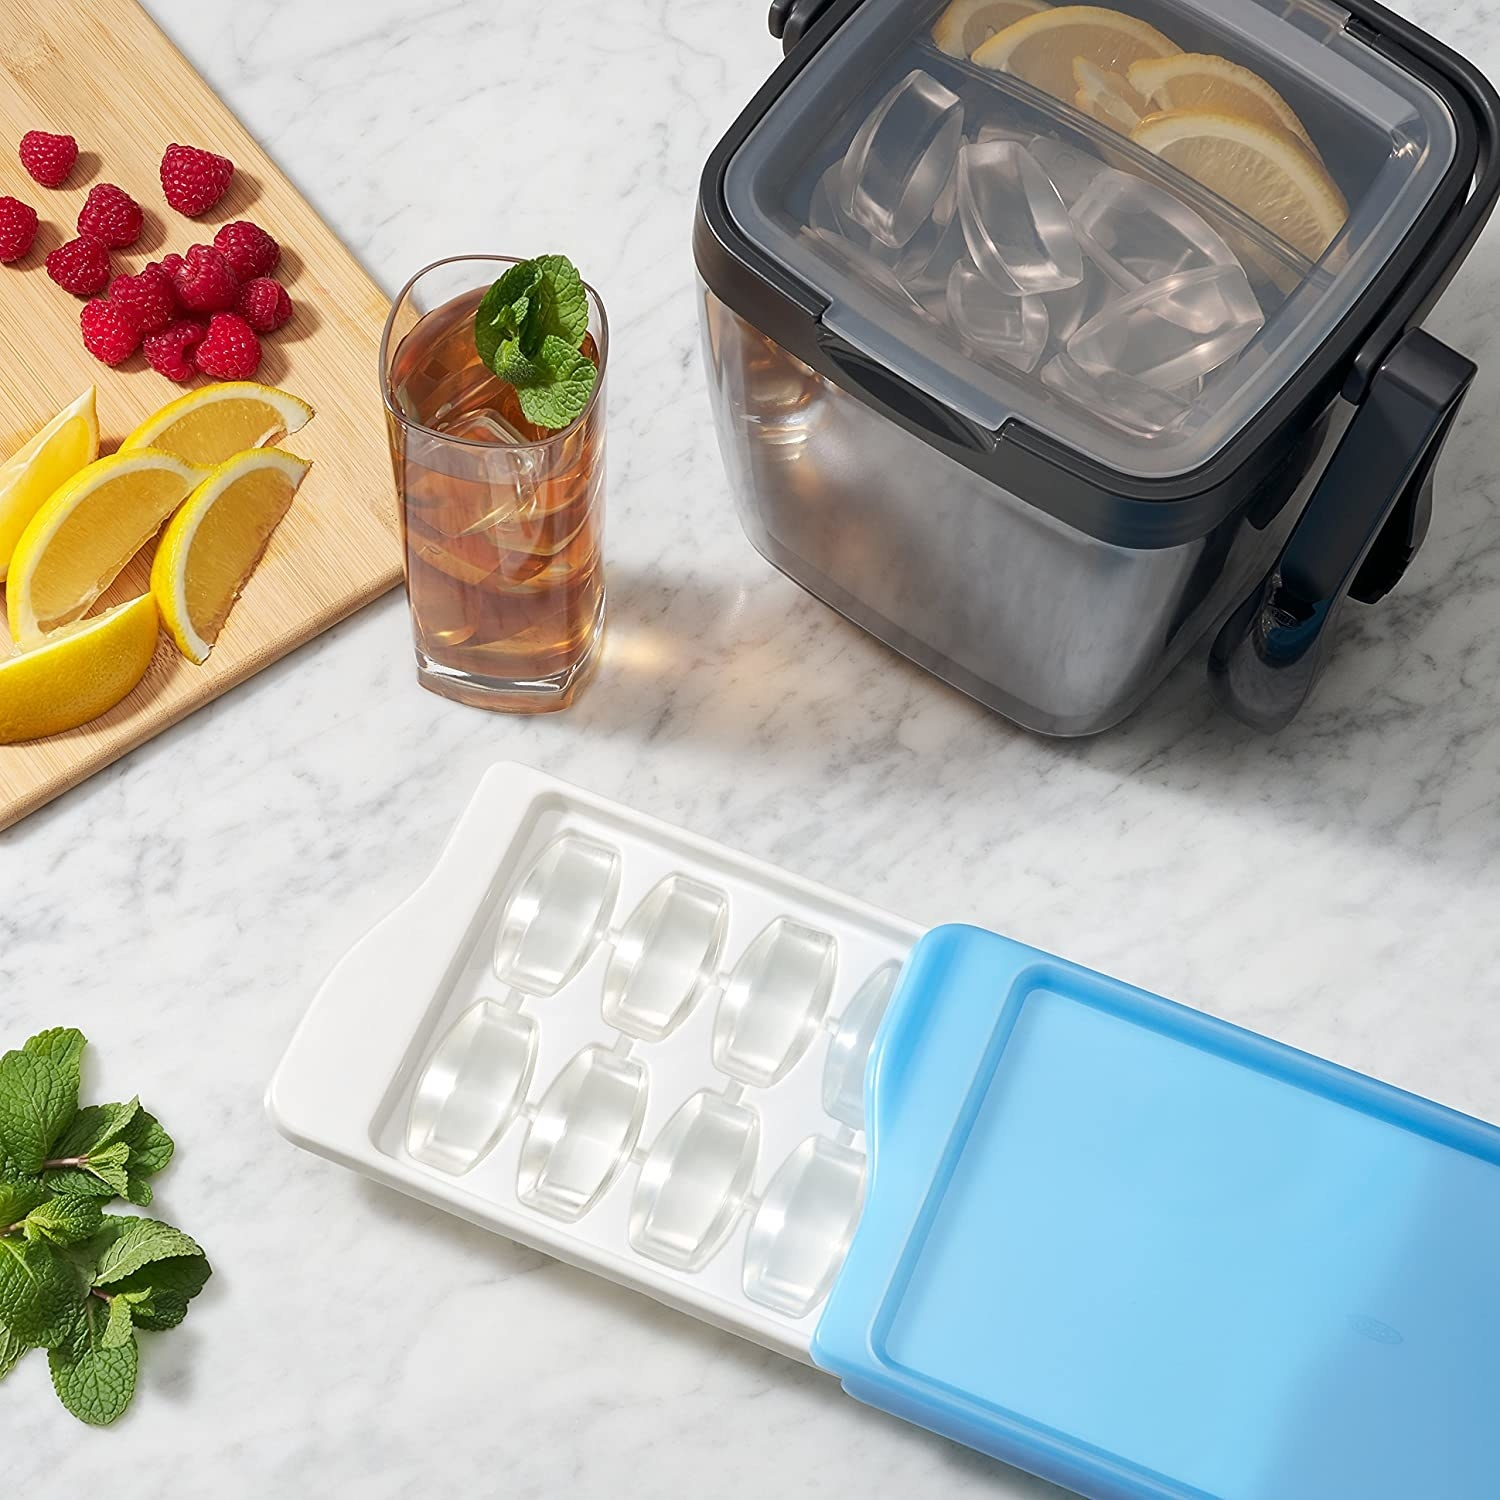 The lidded ice cube tray lays half open on a counter next to a glass of iced tea, a cutting board with fresh fruit, and some mint